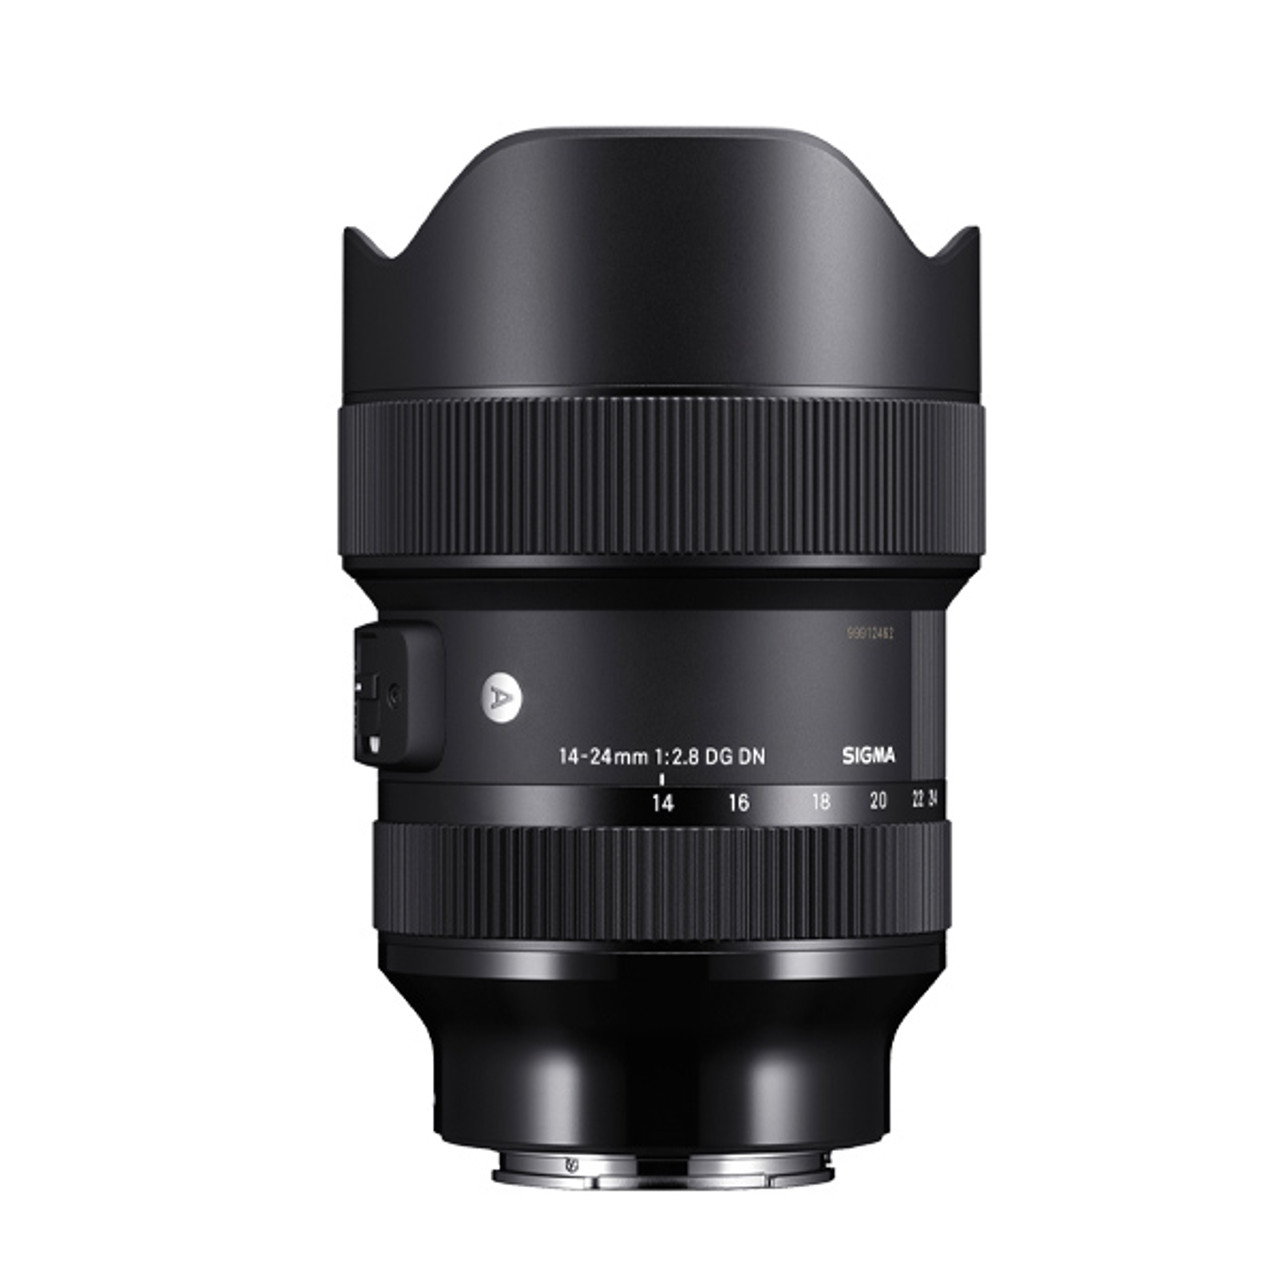 Sigma 14-24mm f/2.8 DG DN Art Lens (E-Mount)